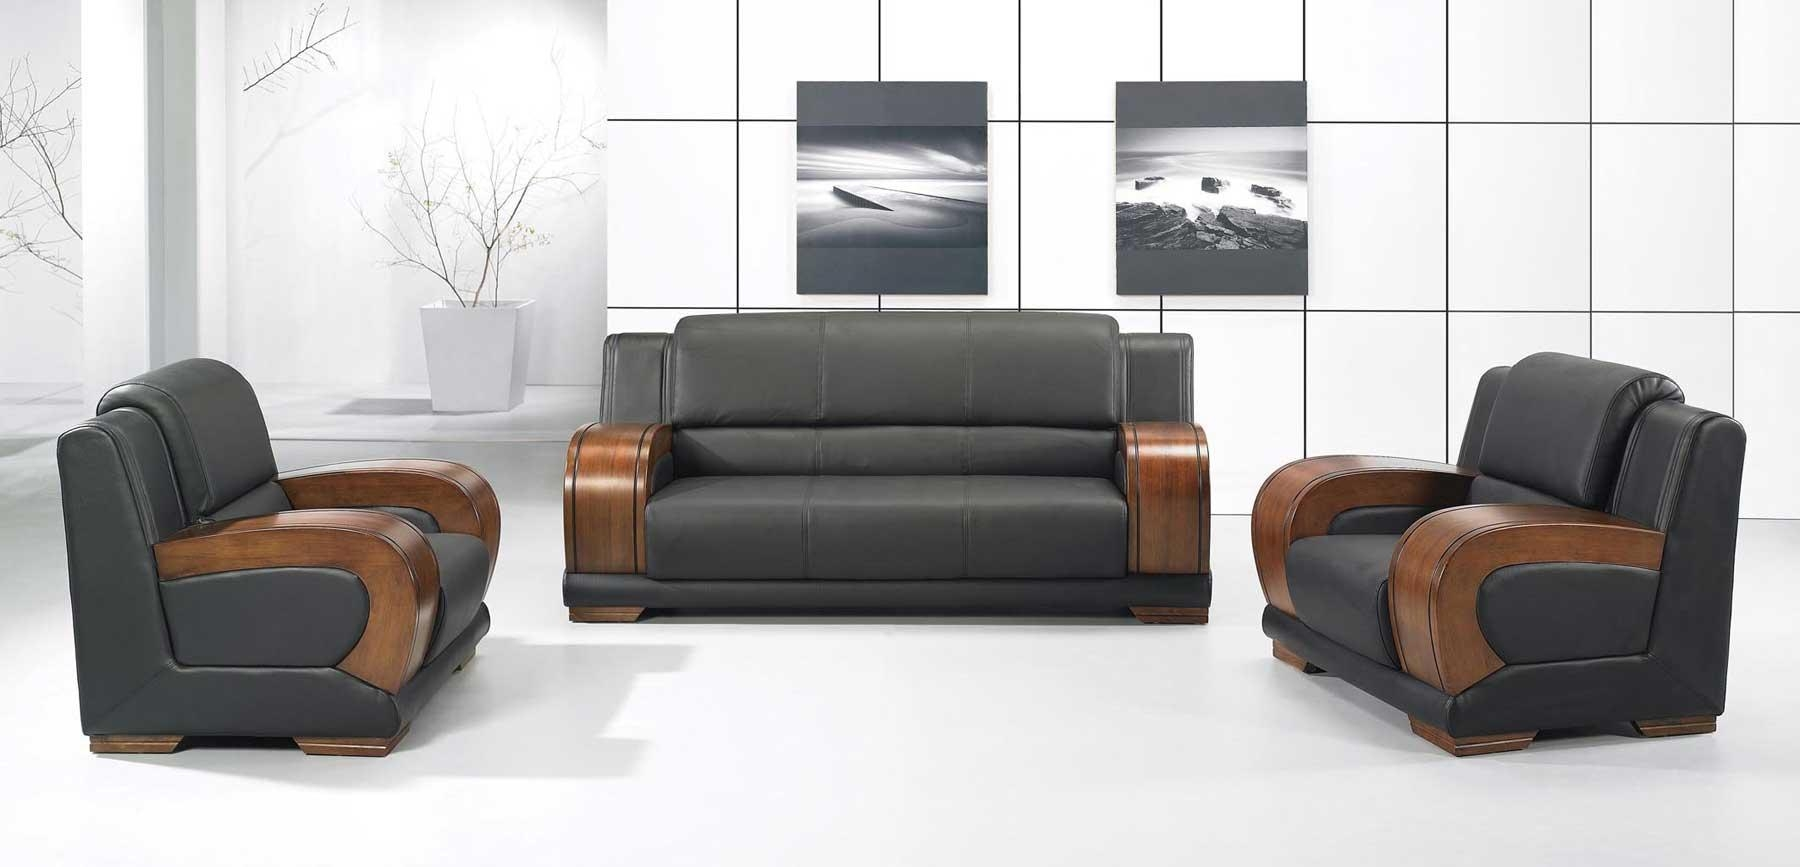 Amazing Modern Office Sofa With China Office Sofa S China Modern Regarding Office Sofa Chairs (Image 3 of 20)